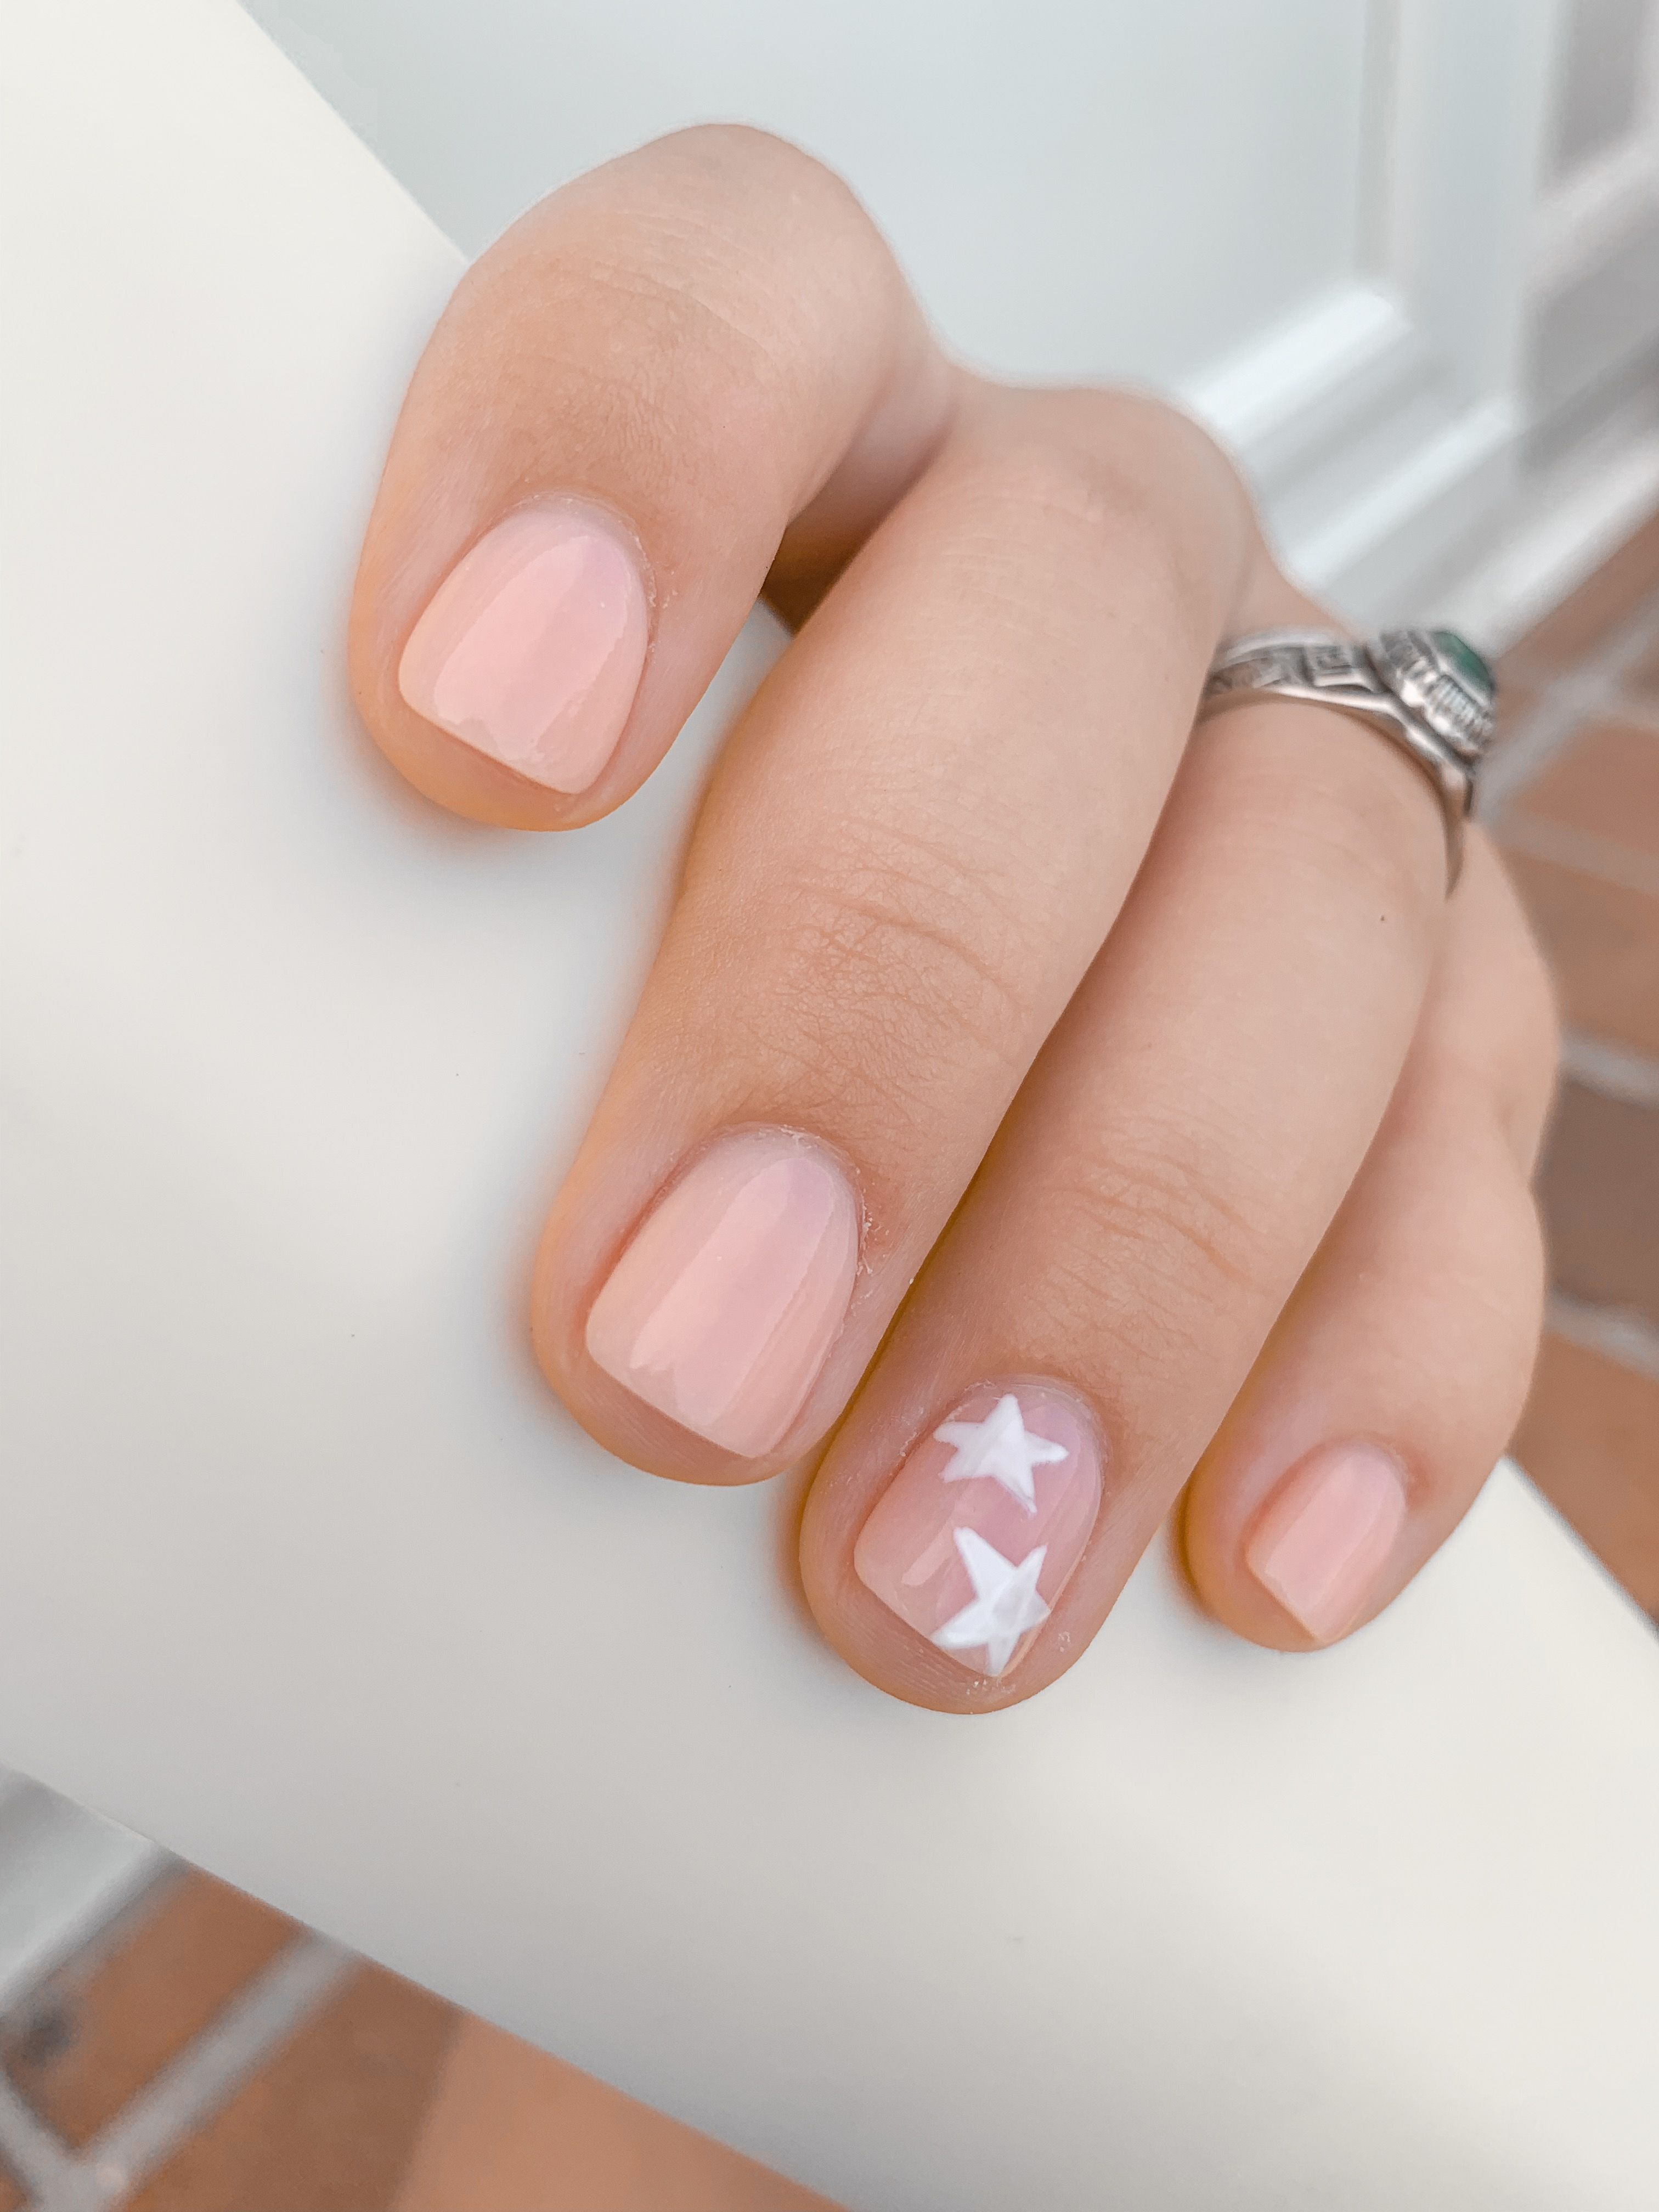 Sns Dip Powder 16 With Stars Summer Nails Colors Designs Hair And Nails Dip Powder Nails